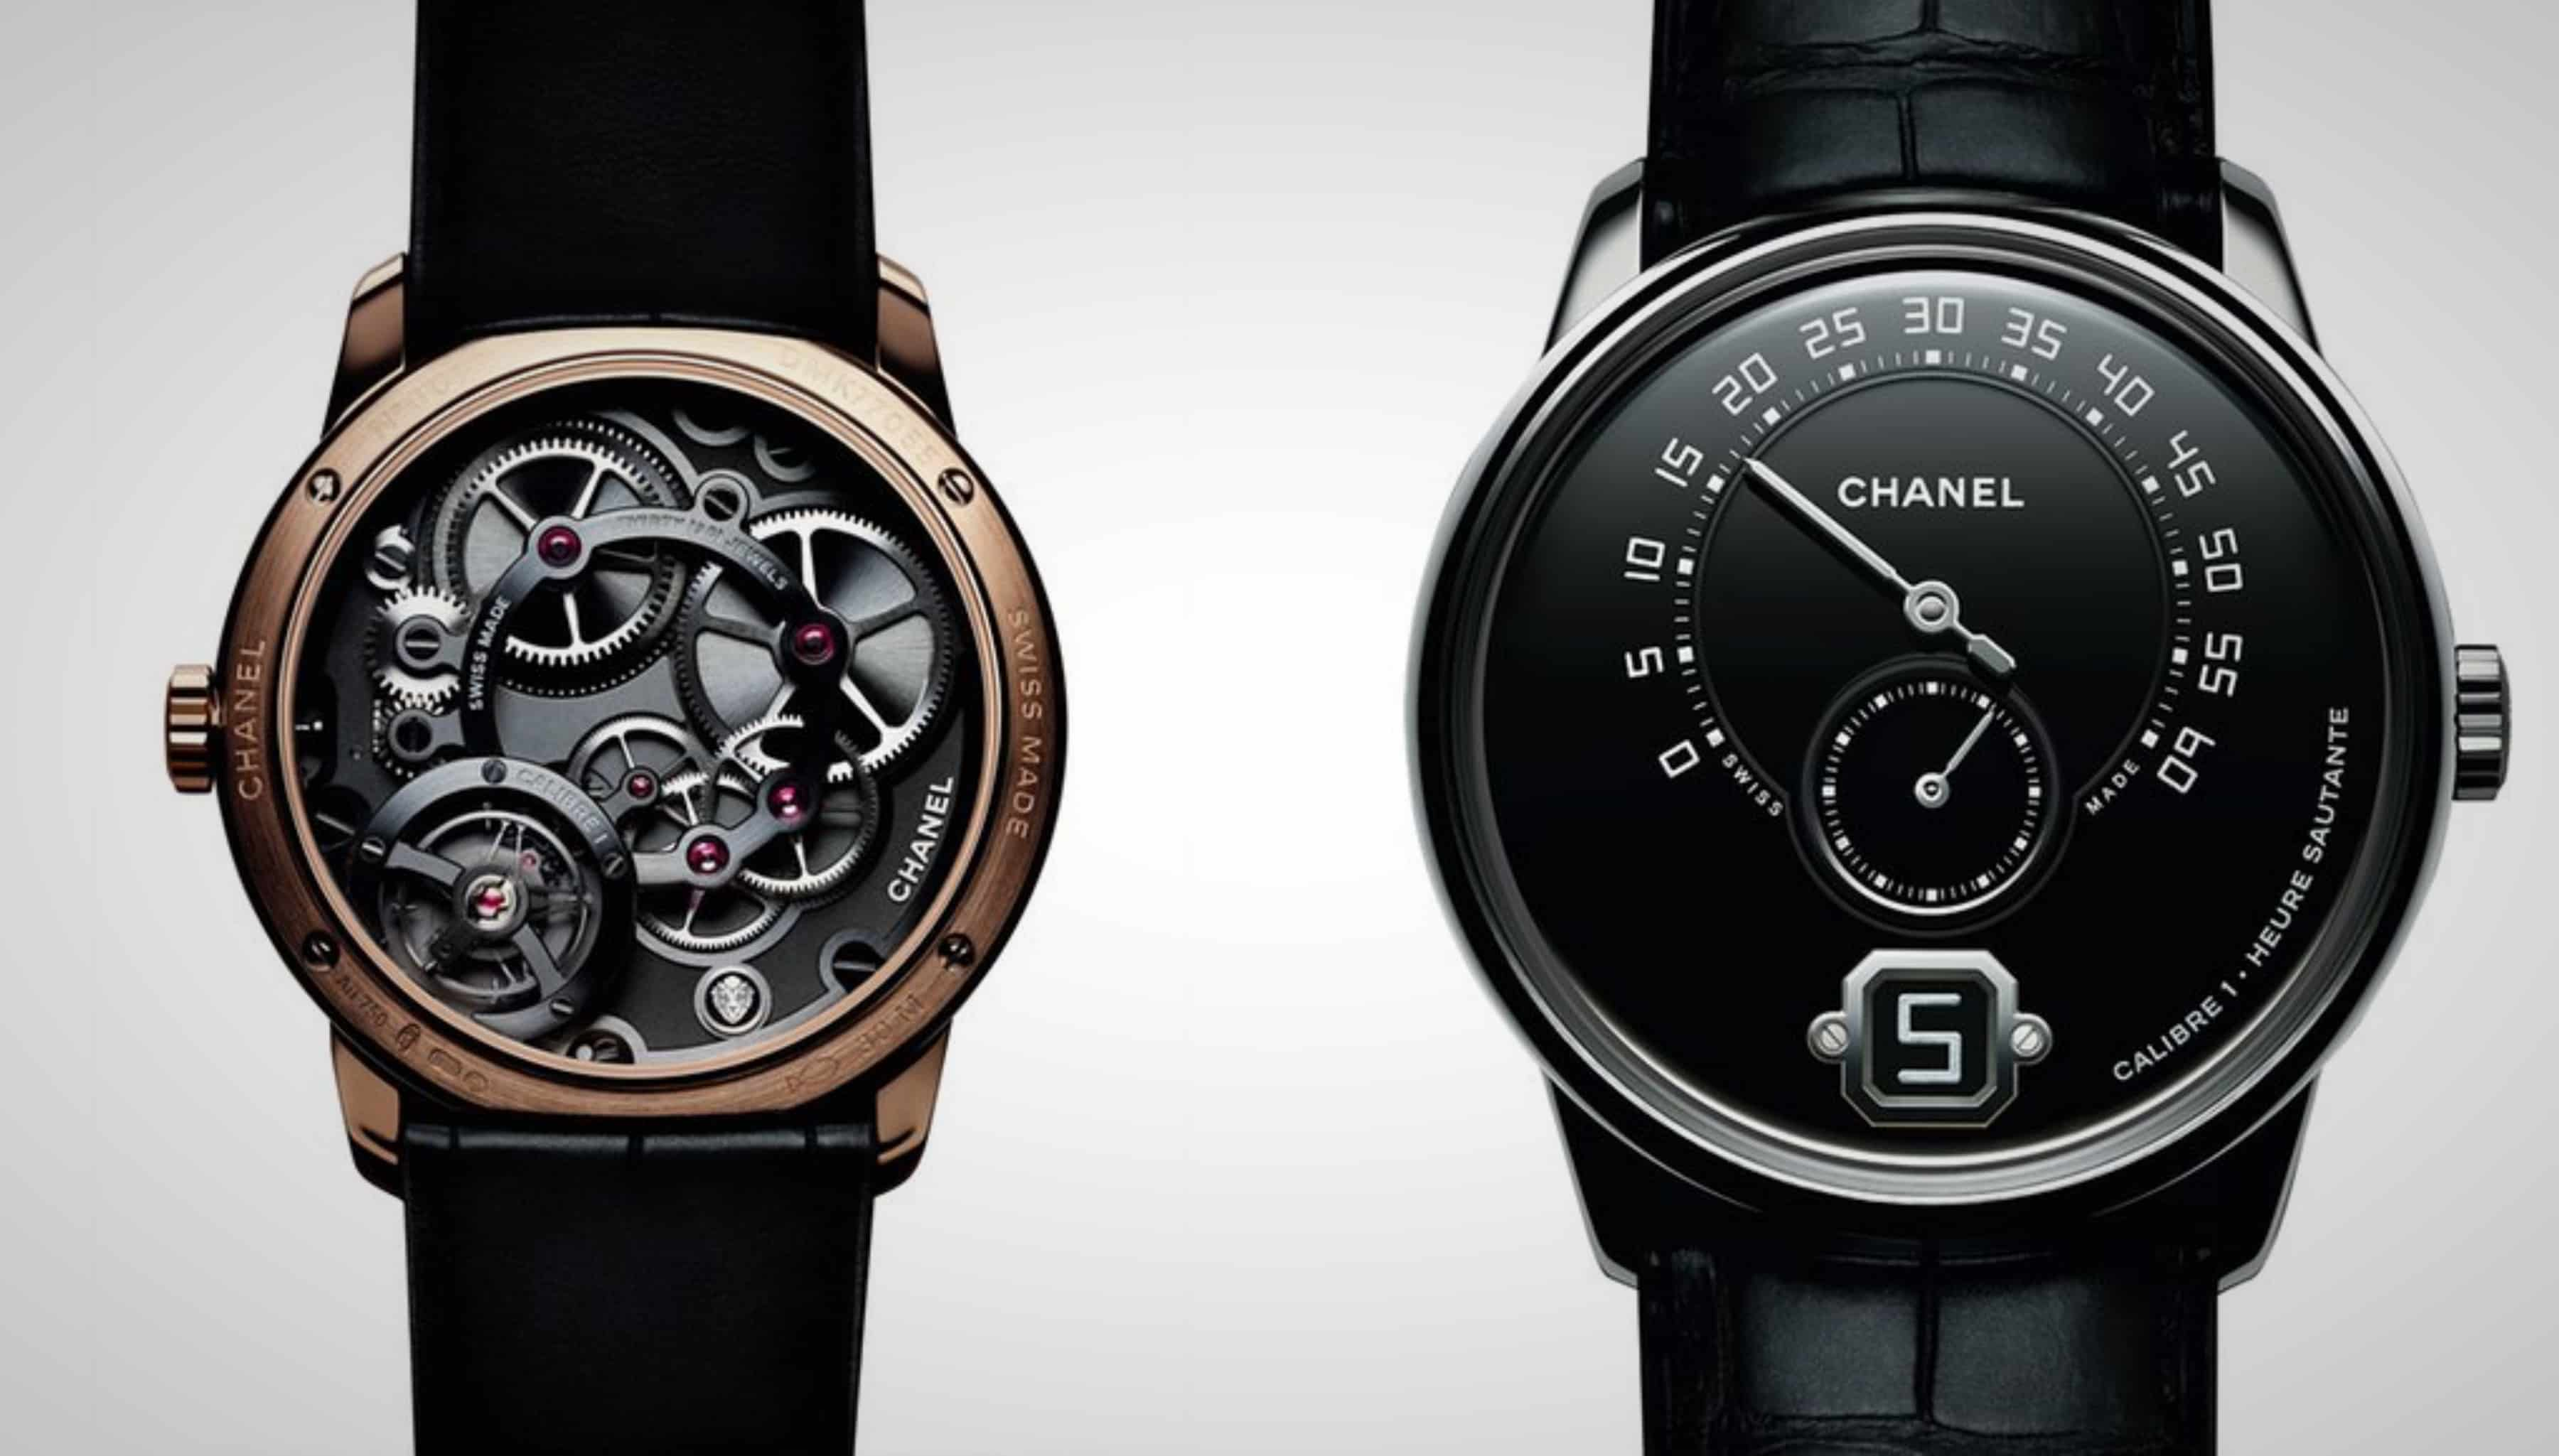 Chanel Limited Edition Watches